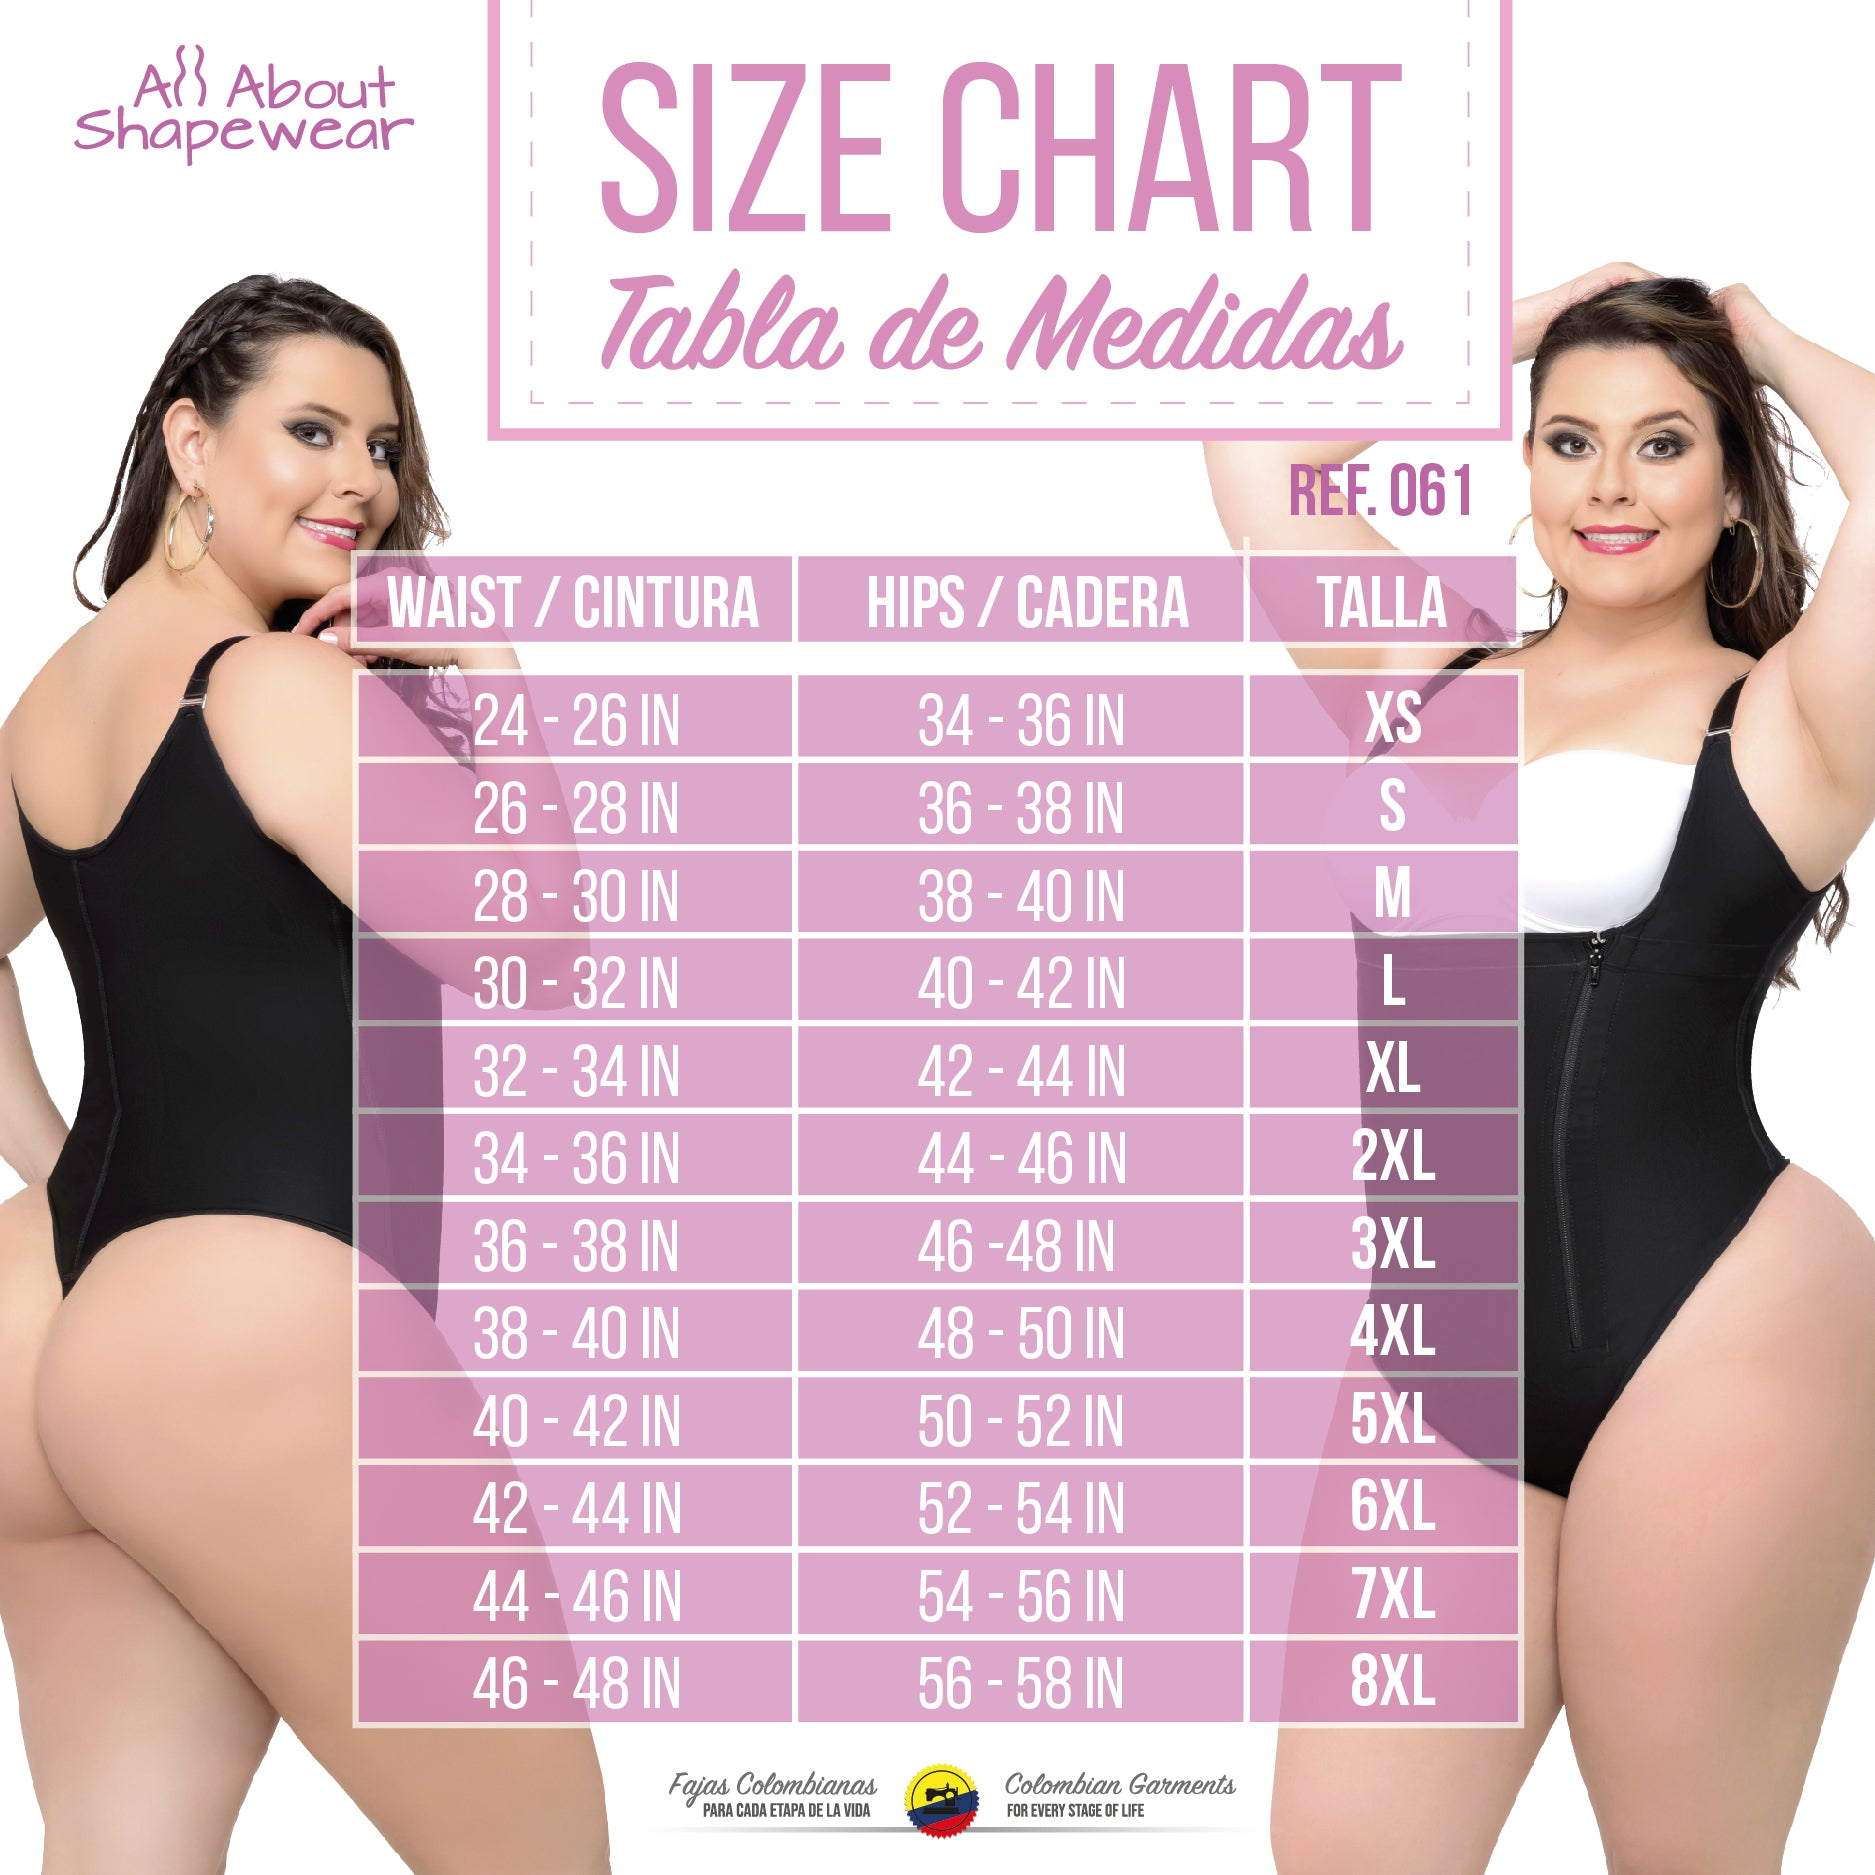 bb31ae770e Fajas Colombianas G-String Style Shapewear with High Back Coverage 061 -  Fajas Colombianas Shapewear